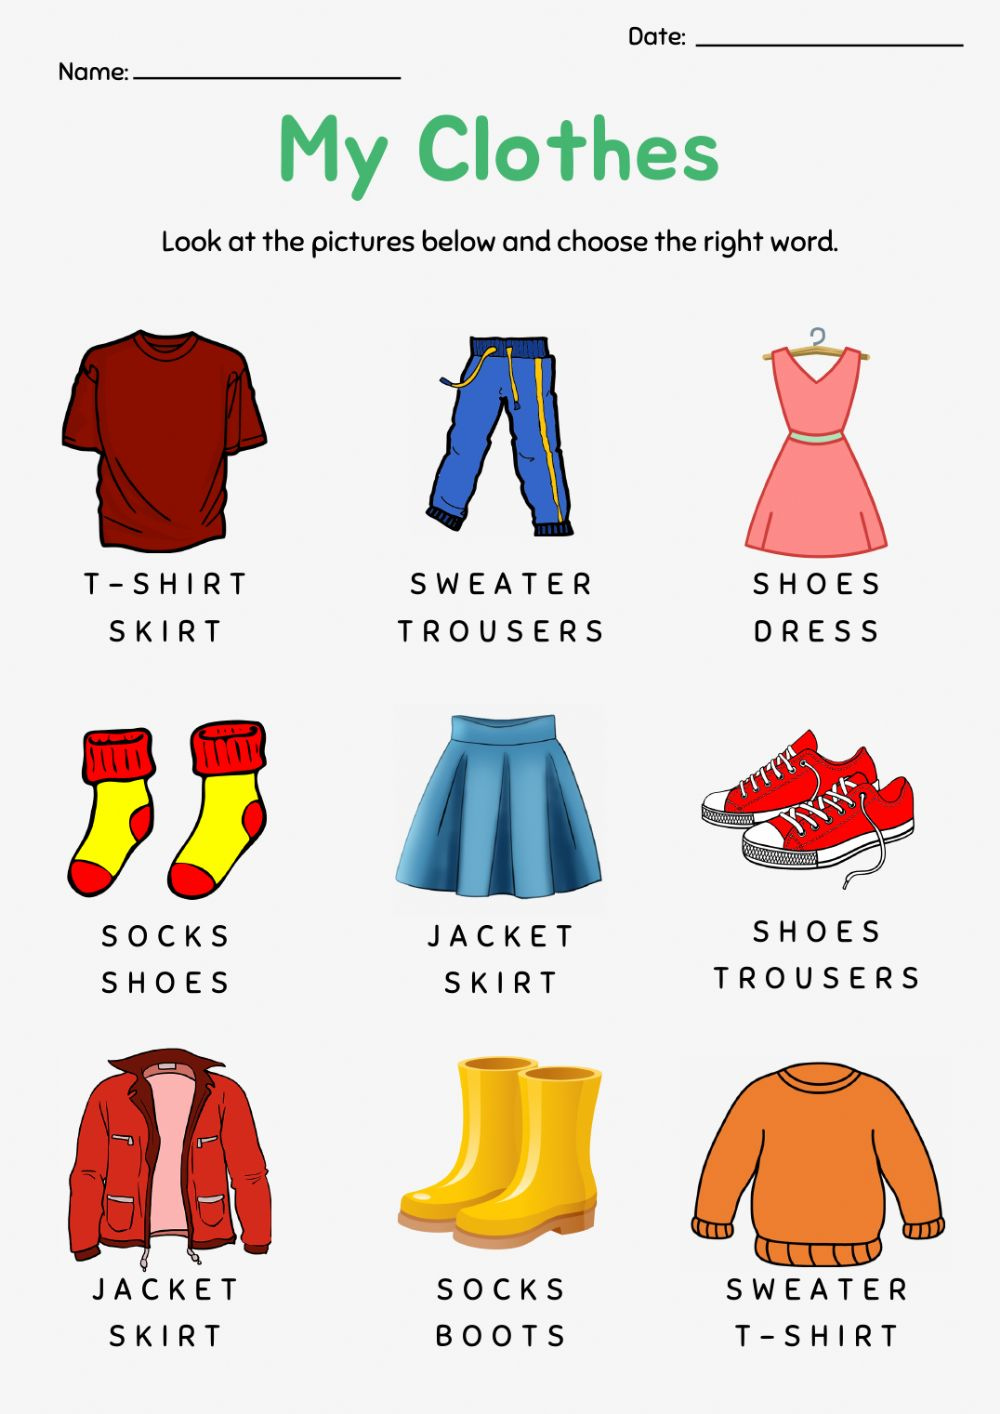 Pdf Online Worksheet My Clothes